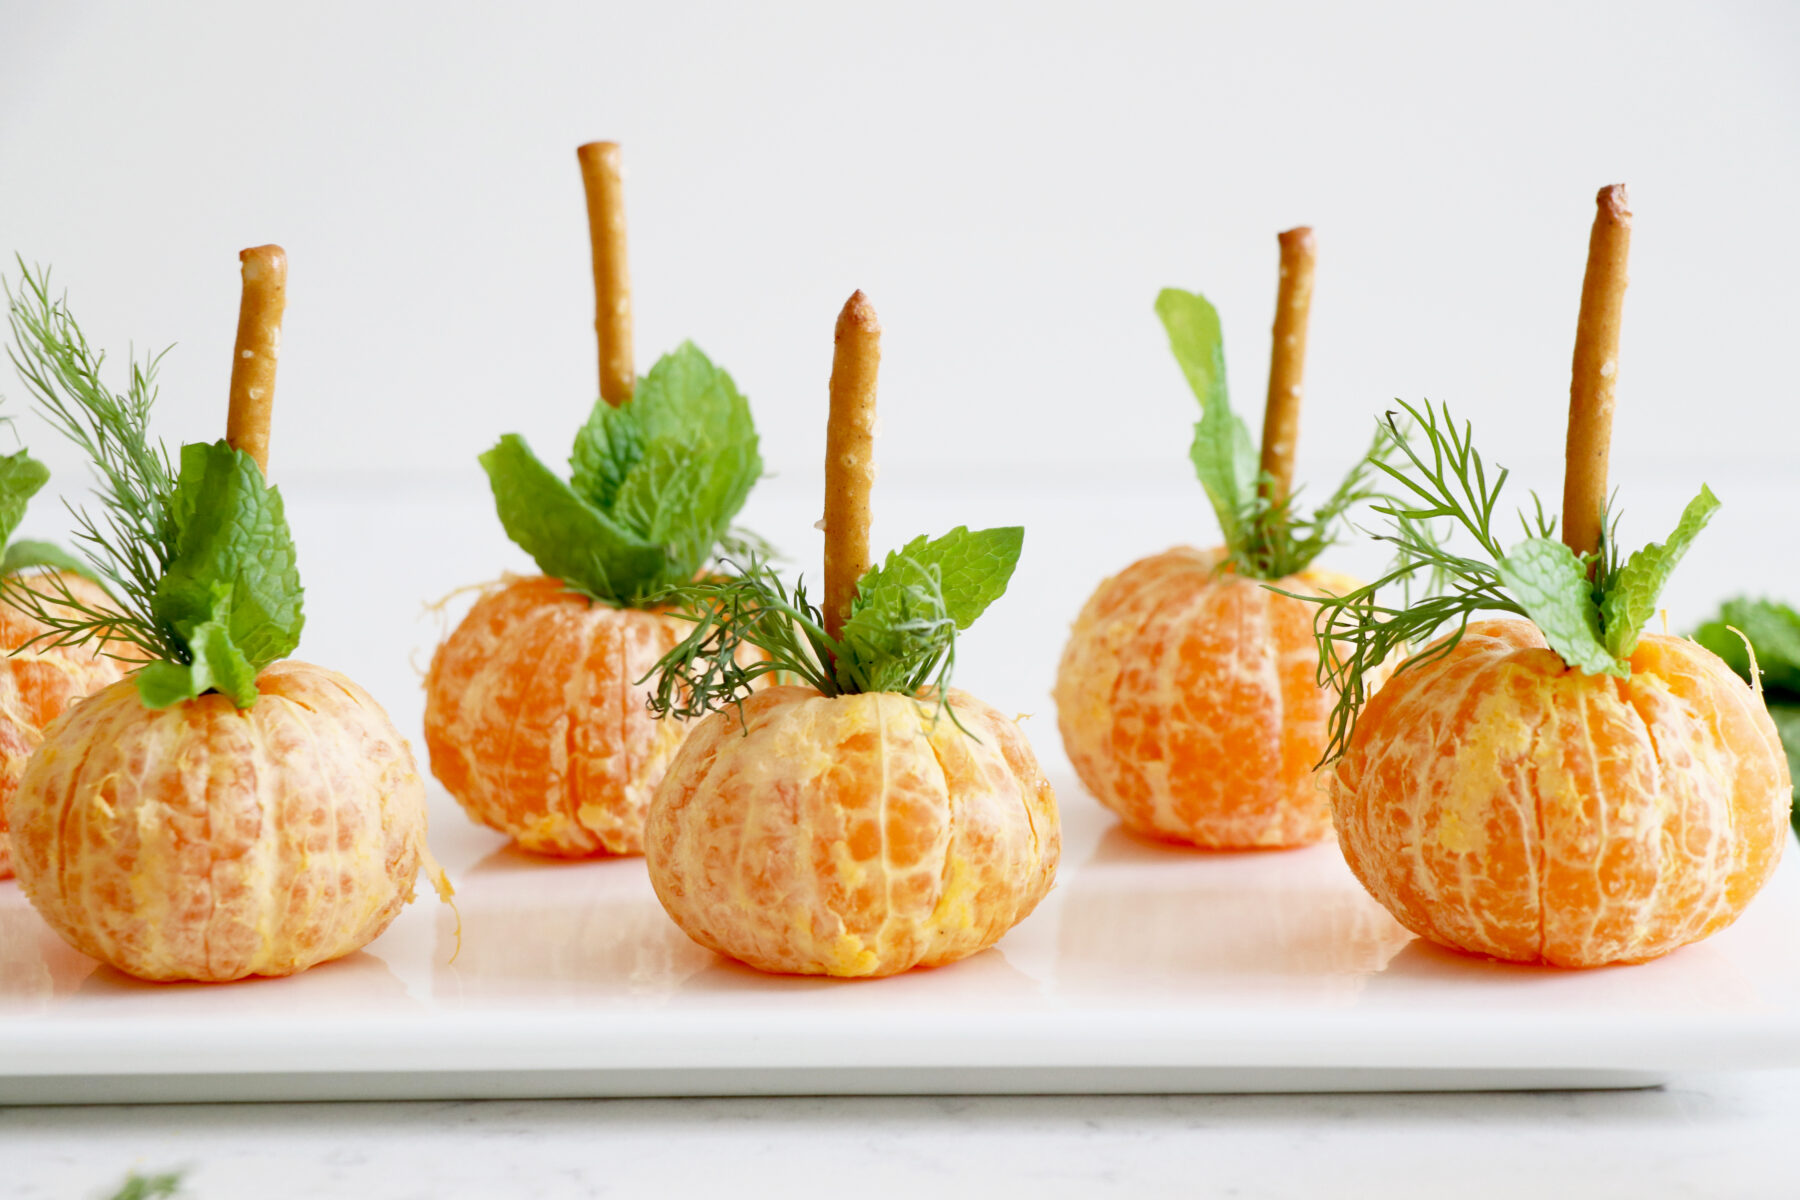 Oranges topped with pretzel and greens on white plate.